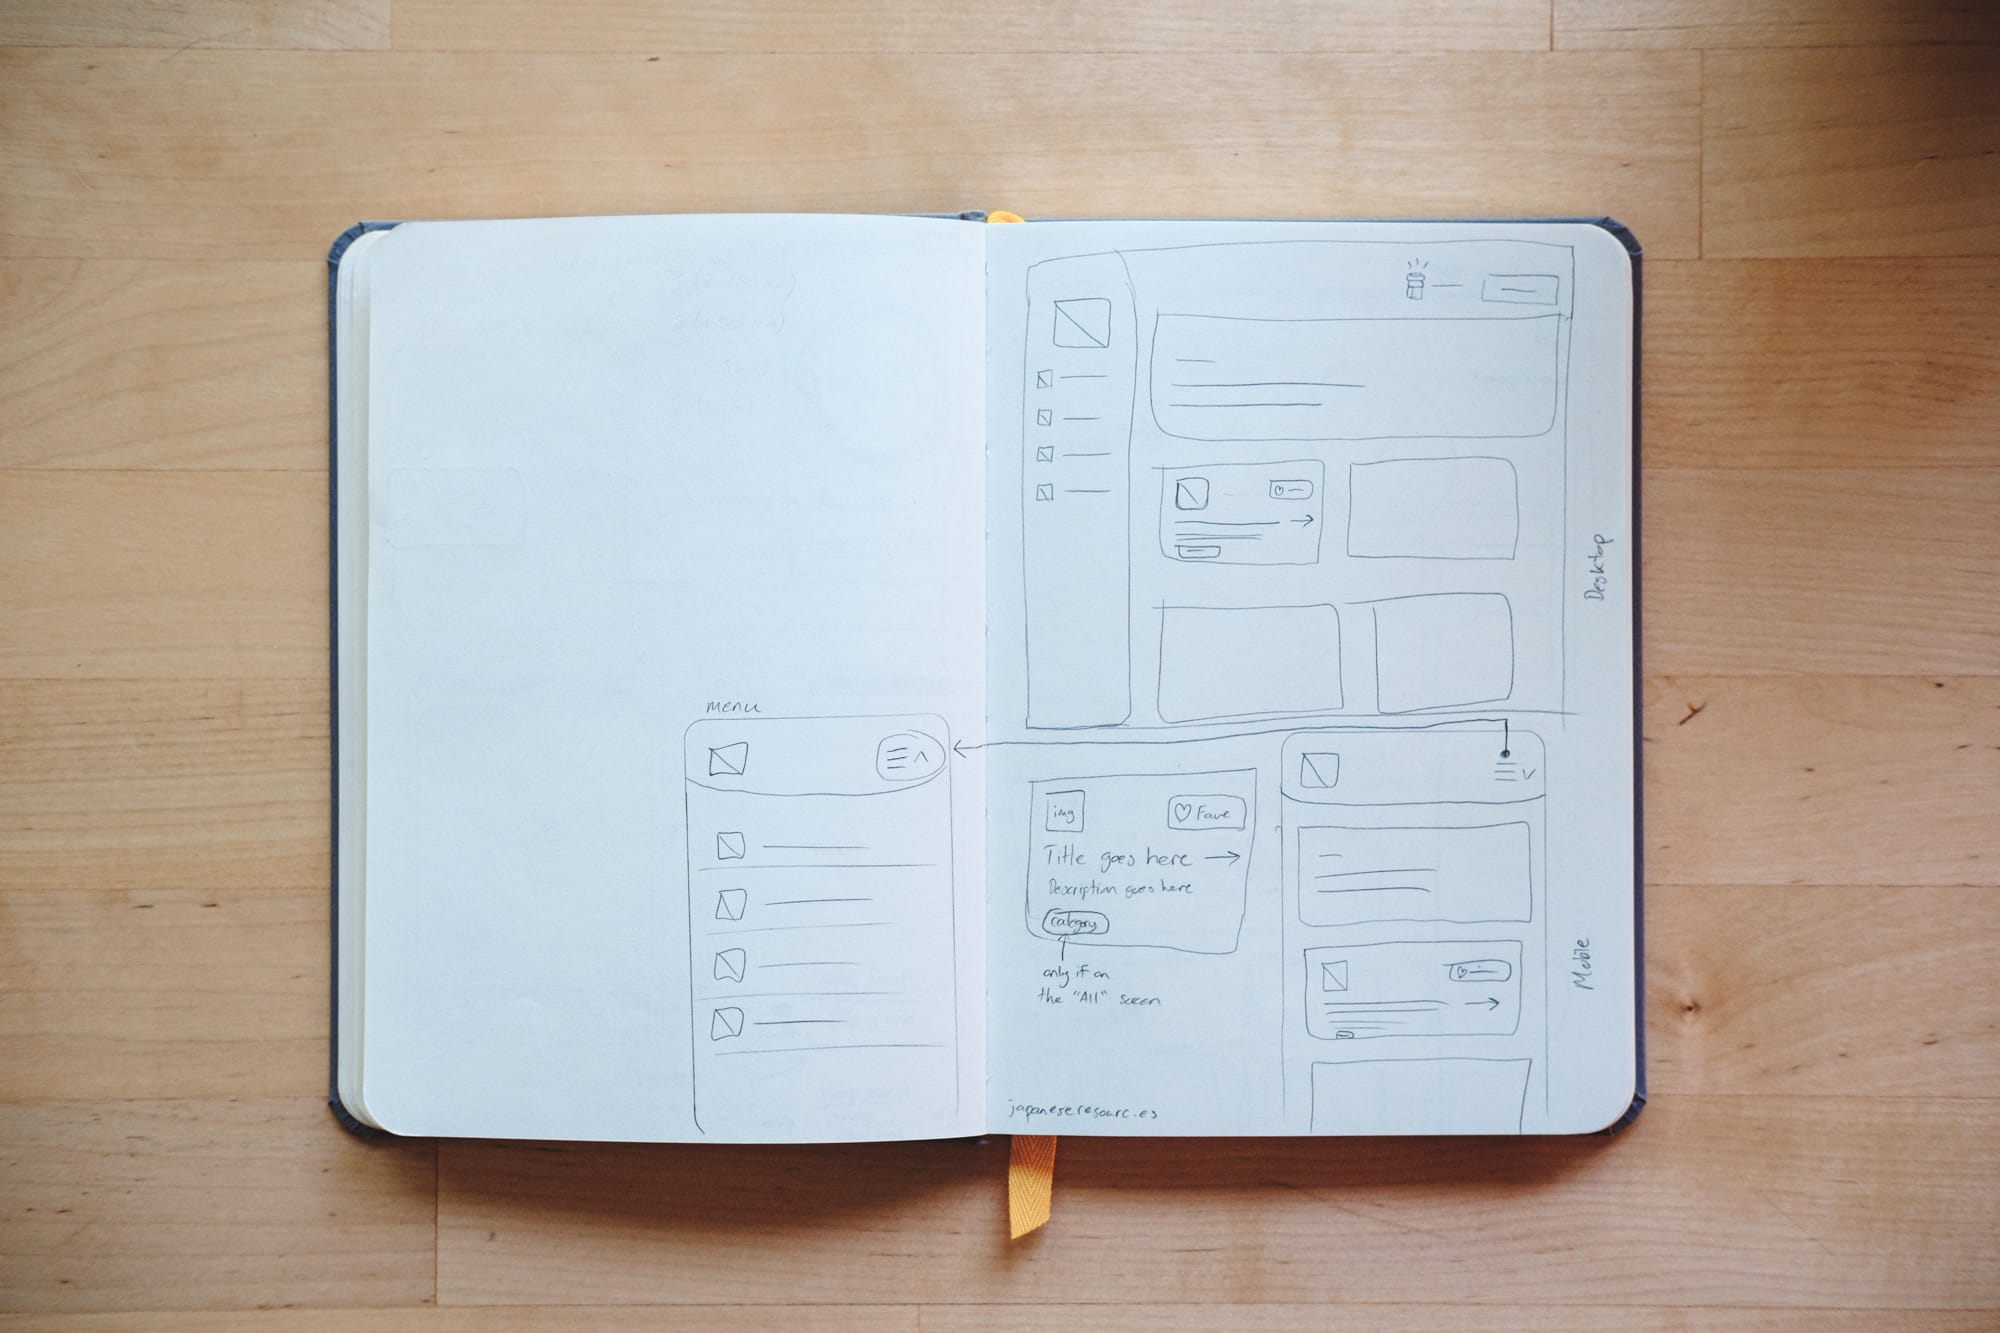 Photo of wireframes sketched in a notebook